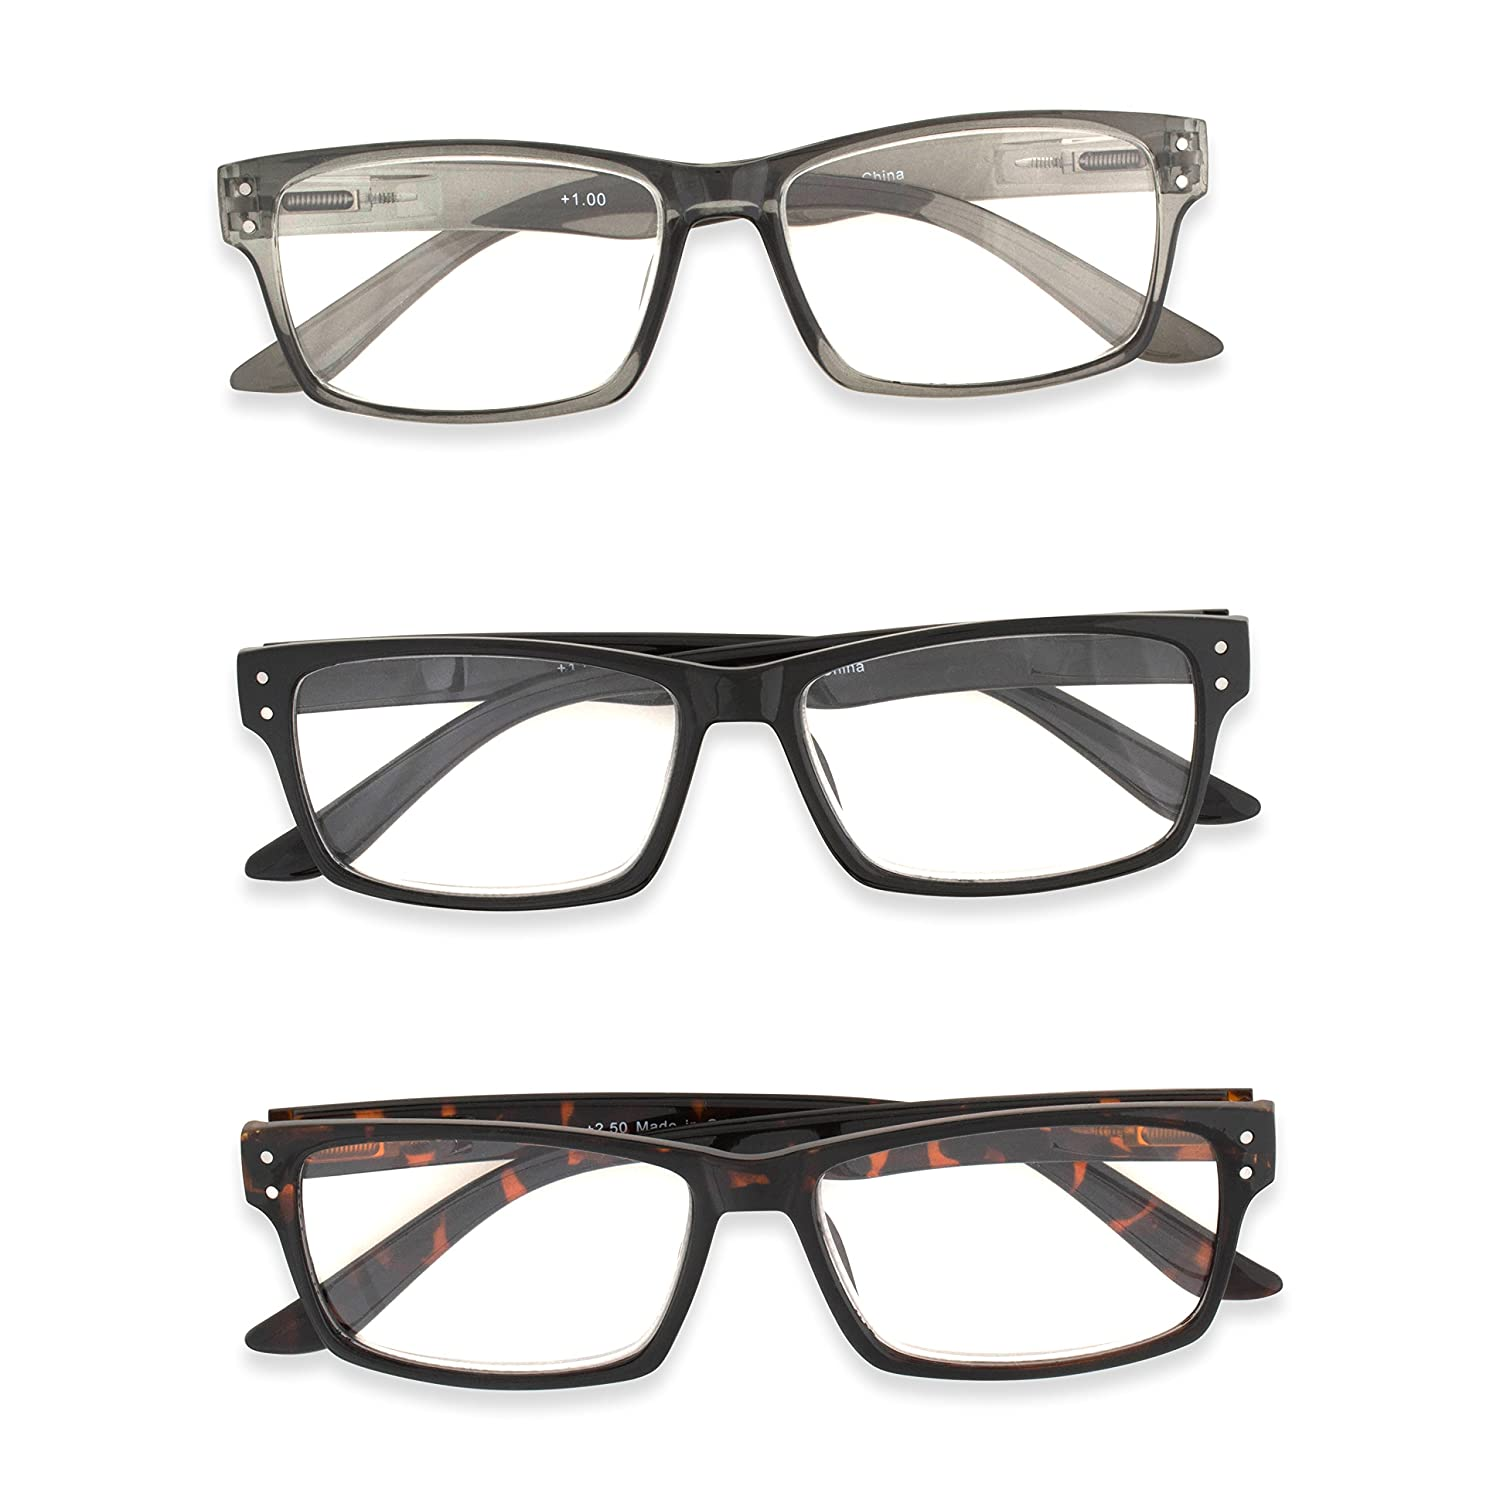 1150f94c13de Amazon.com: Inner Vision 3-Pack Reading Glasses Set w/Spring Hinges for Men  & Women - (1.25 x Magnification) - 3 Clear Lens Readers (Neutral Color  Variety): ...